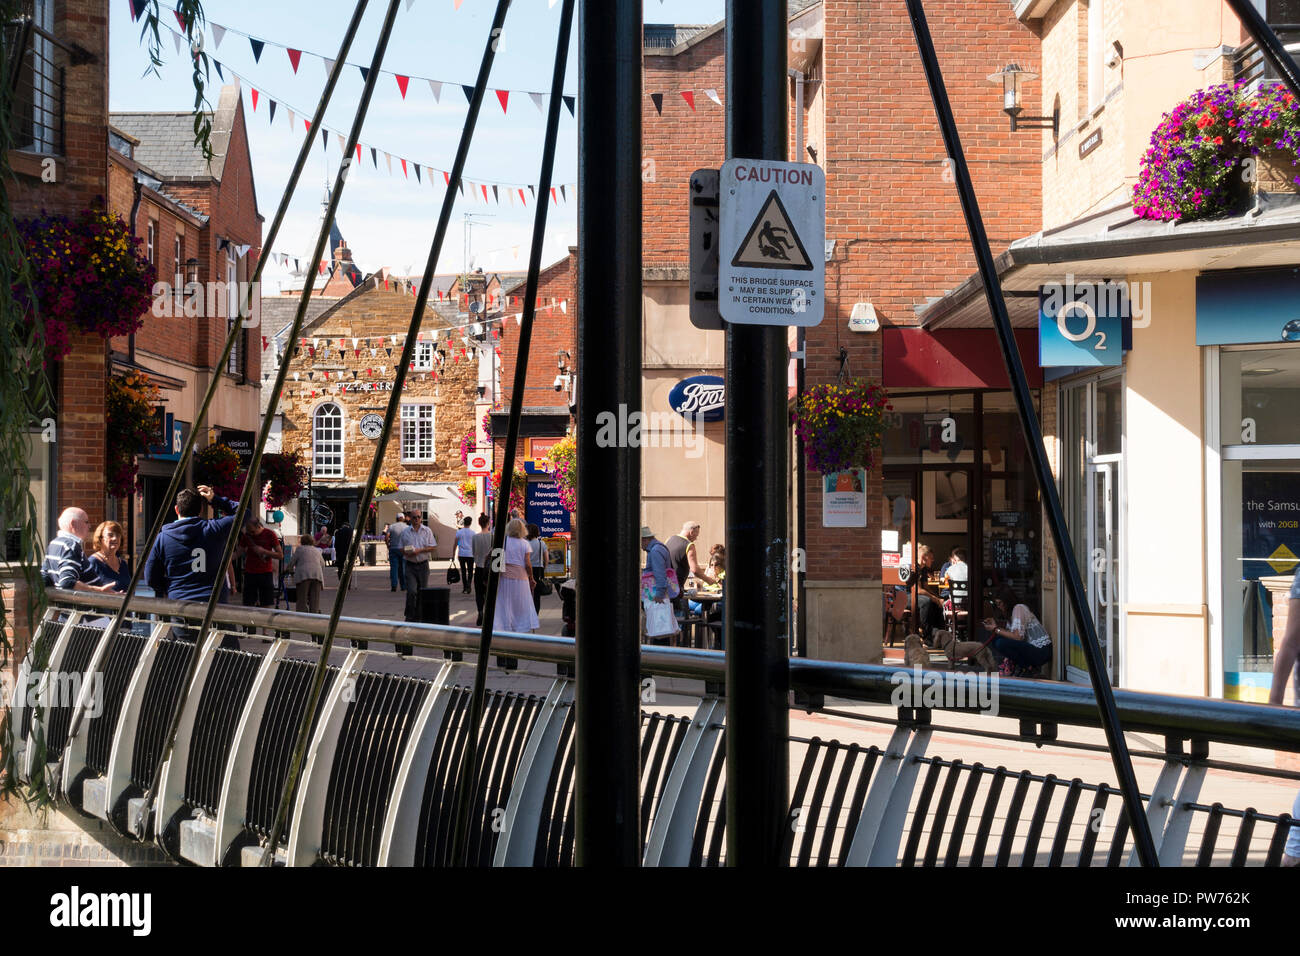 Metal bridge over River Welland and shoppers at St. Mary's Place Shopping Centre, Market Harborough, Leicestershire, England, UK - Stock Image